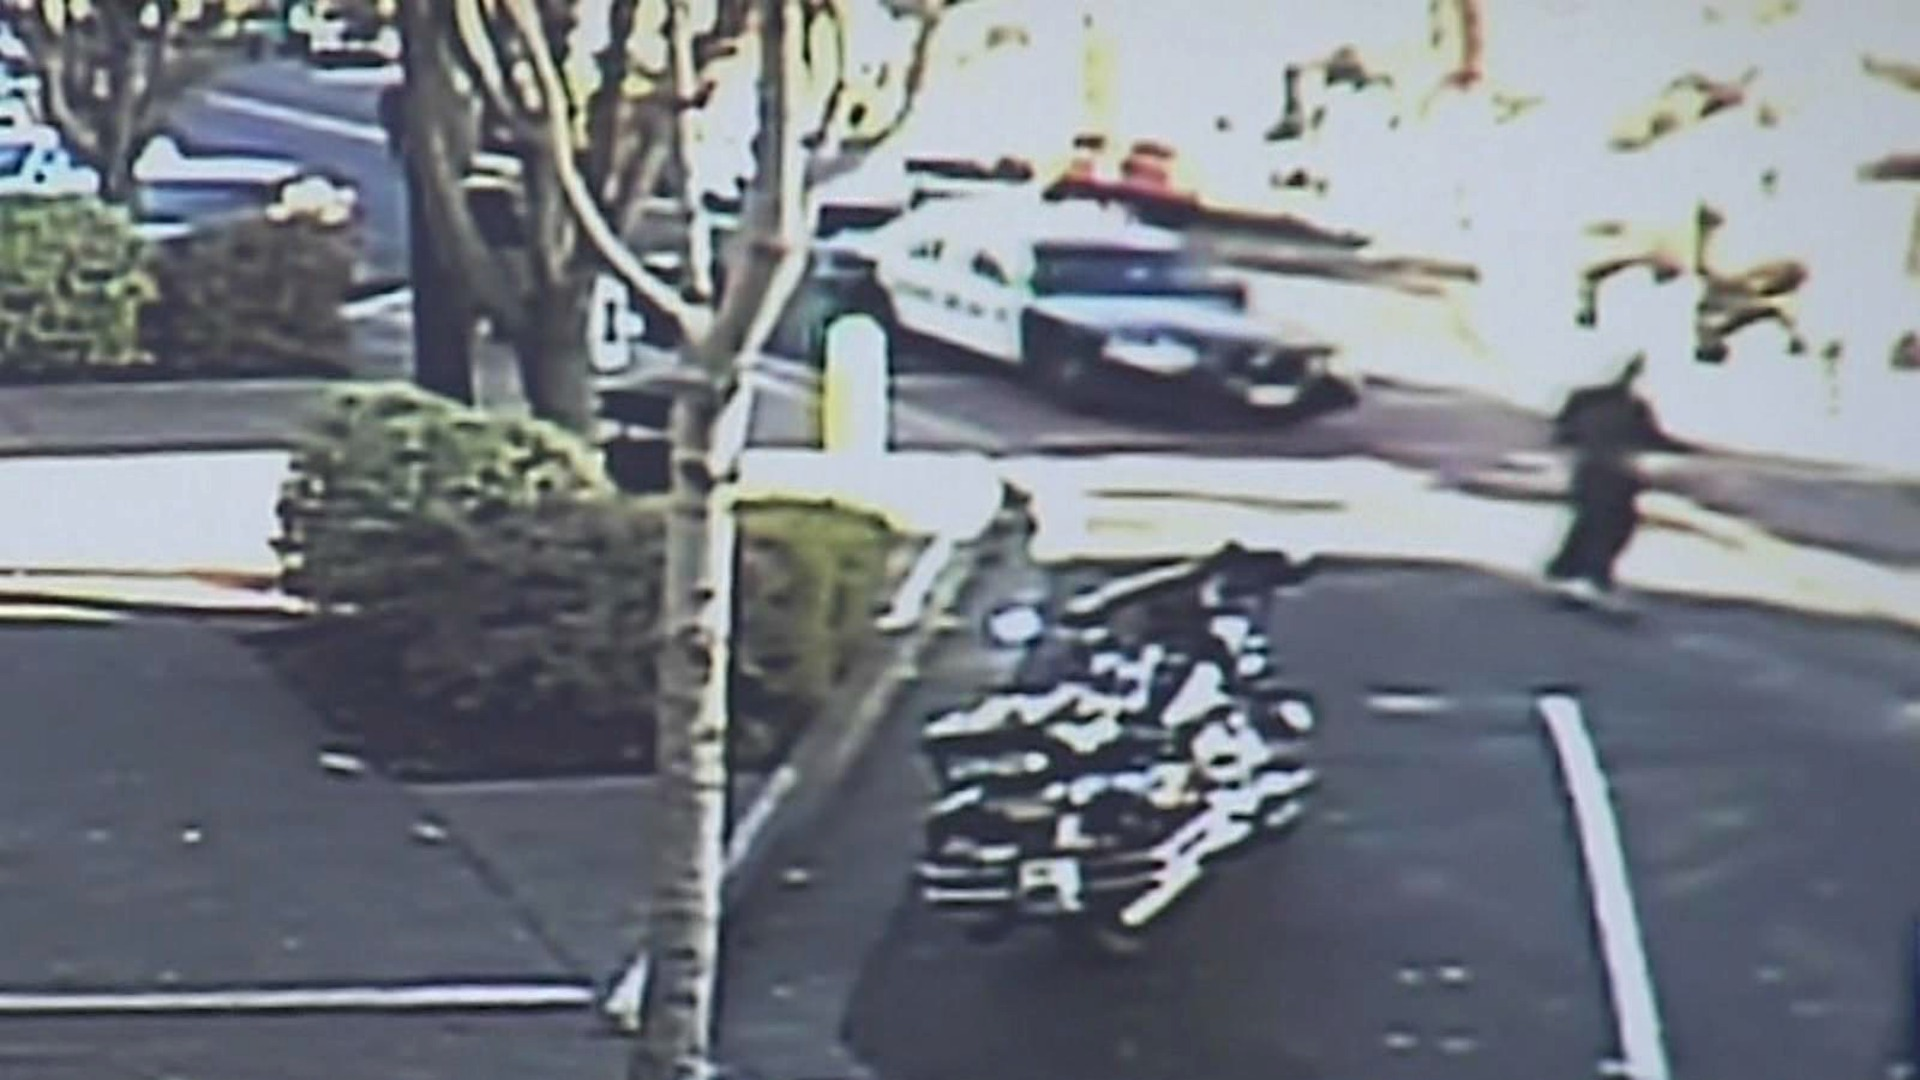 Surveillance video captures a pursuit just before a South San Francisco police officer was hit in the head by a suspect's skateboard. (Nov. 25, 2016)